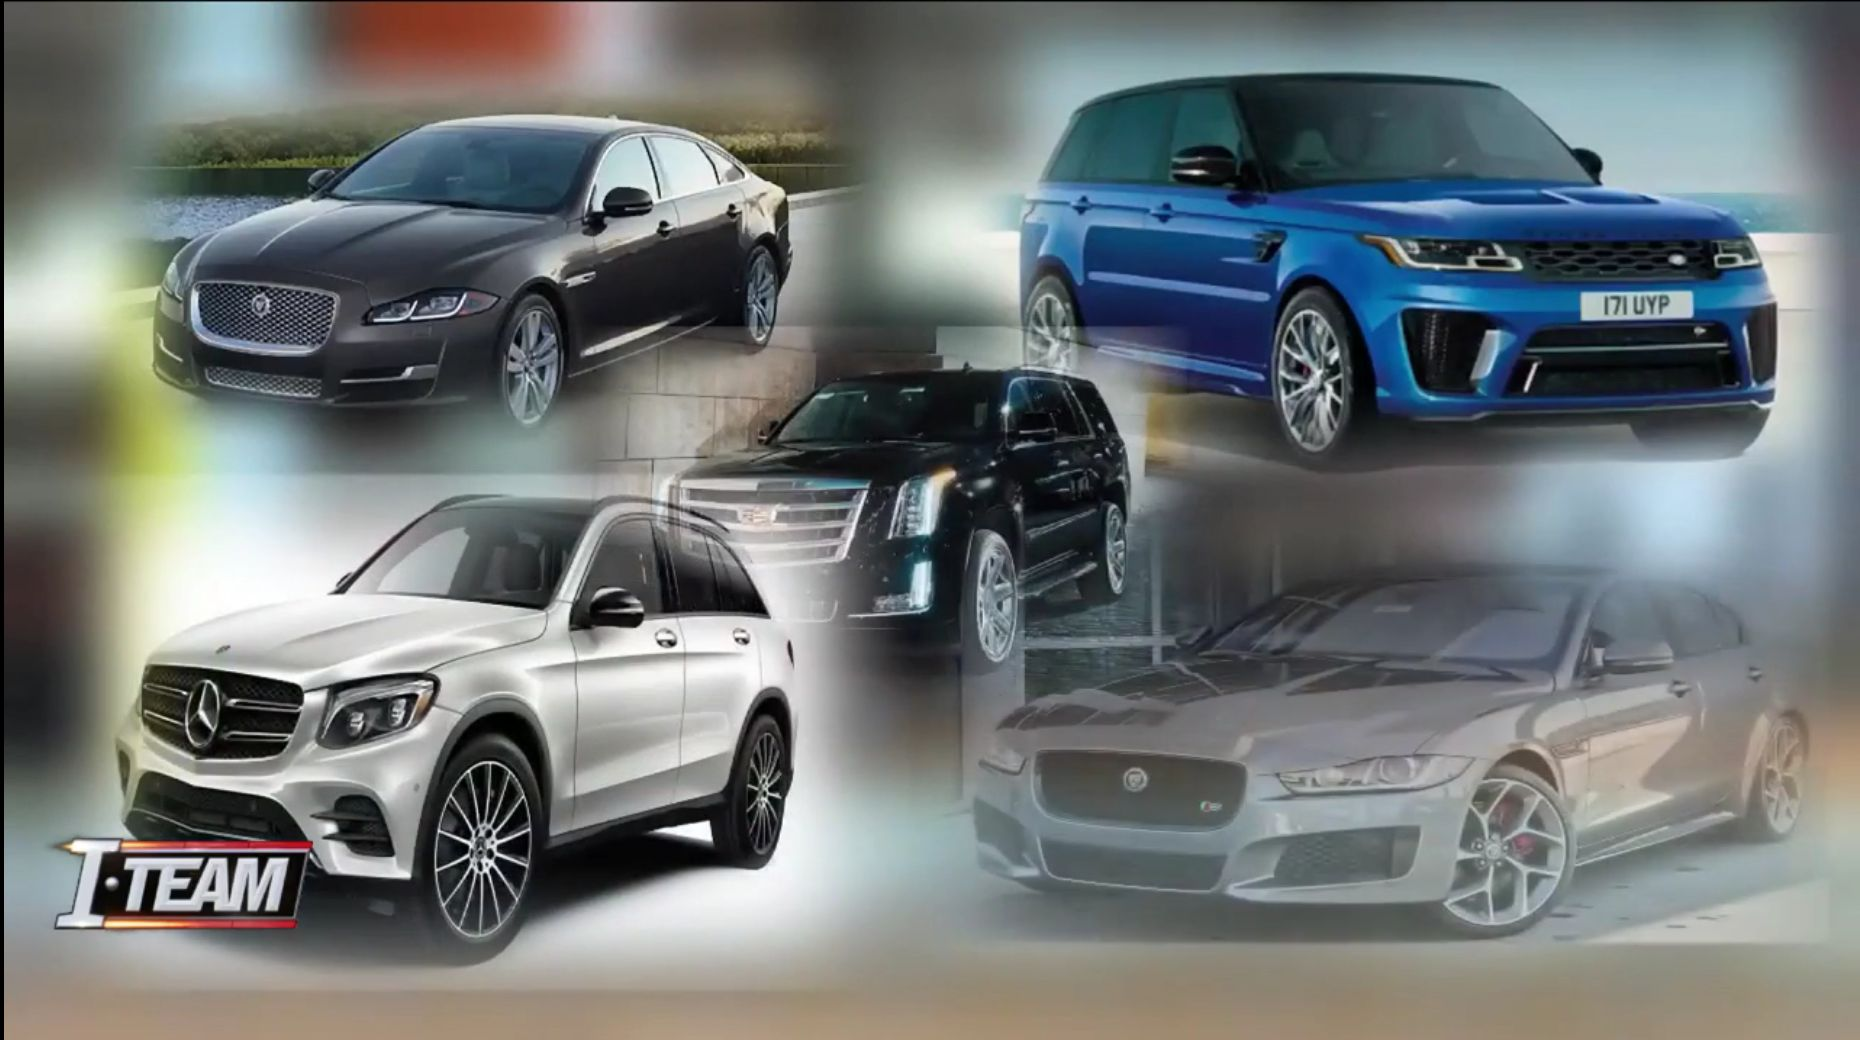 <p>The stolen vehicles — a brand-new Maserati, a Jaguar, a Porsche Cayenne, a Mercedes, a Land Rover Range Rover Sport, a Cadillac, and an Infiniti QX80 — are valued together at about $1.35 million</p>[|CREDIT|]<p><em>Screenshot via News4Jax.</em></p>